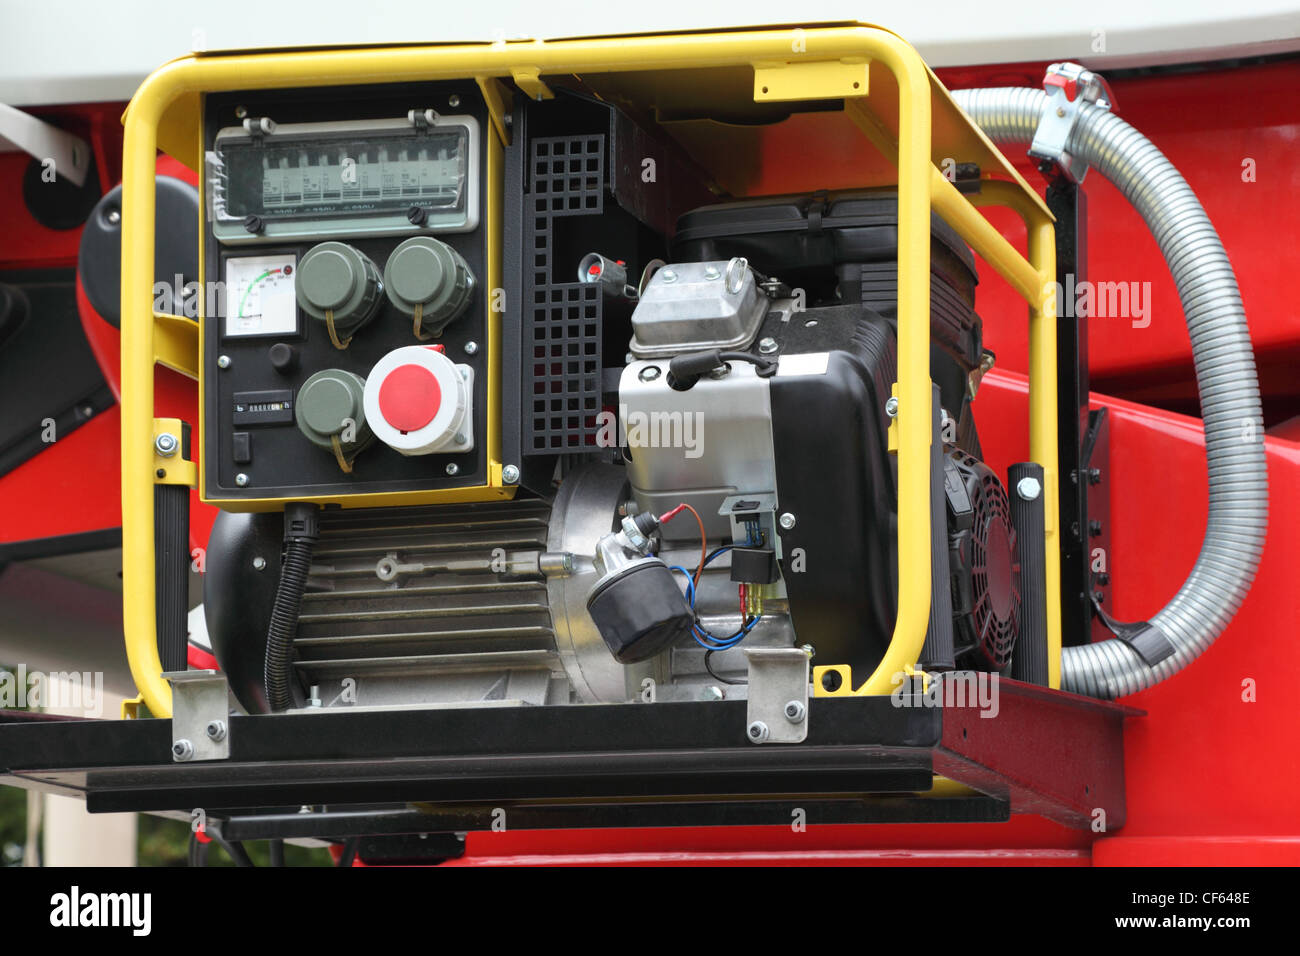 Black panel with petrol compact electricity generator inside red fire engine - Stock Image